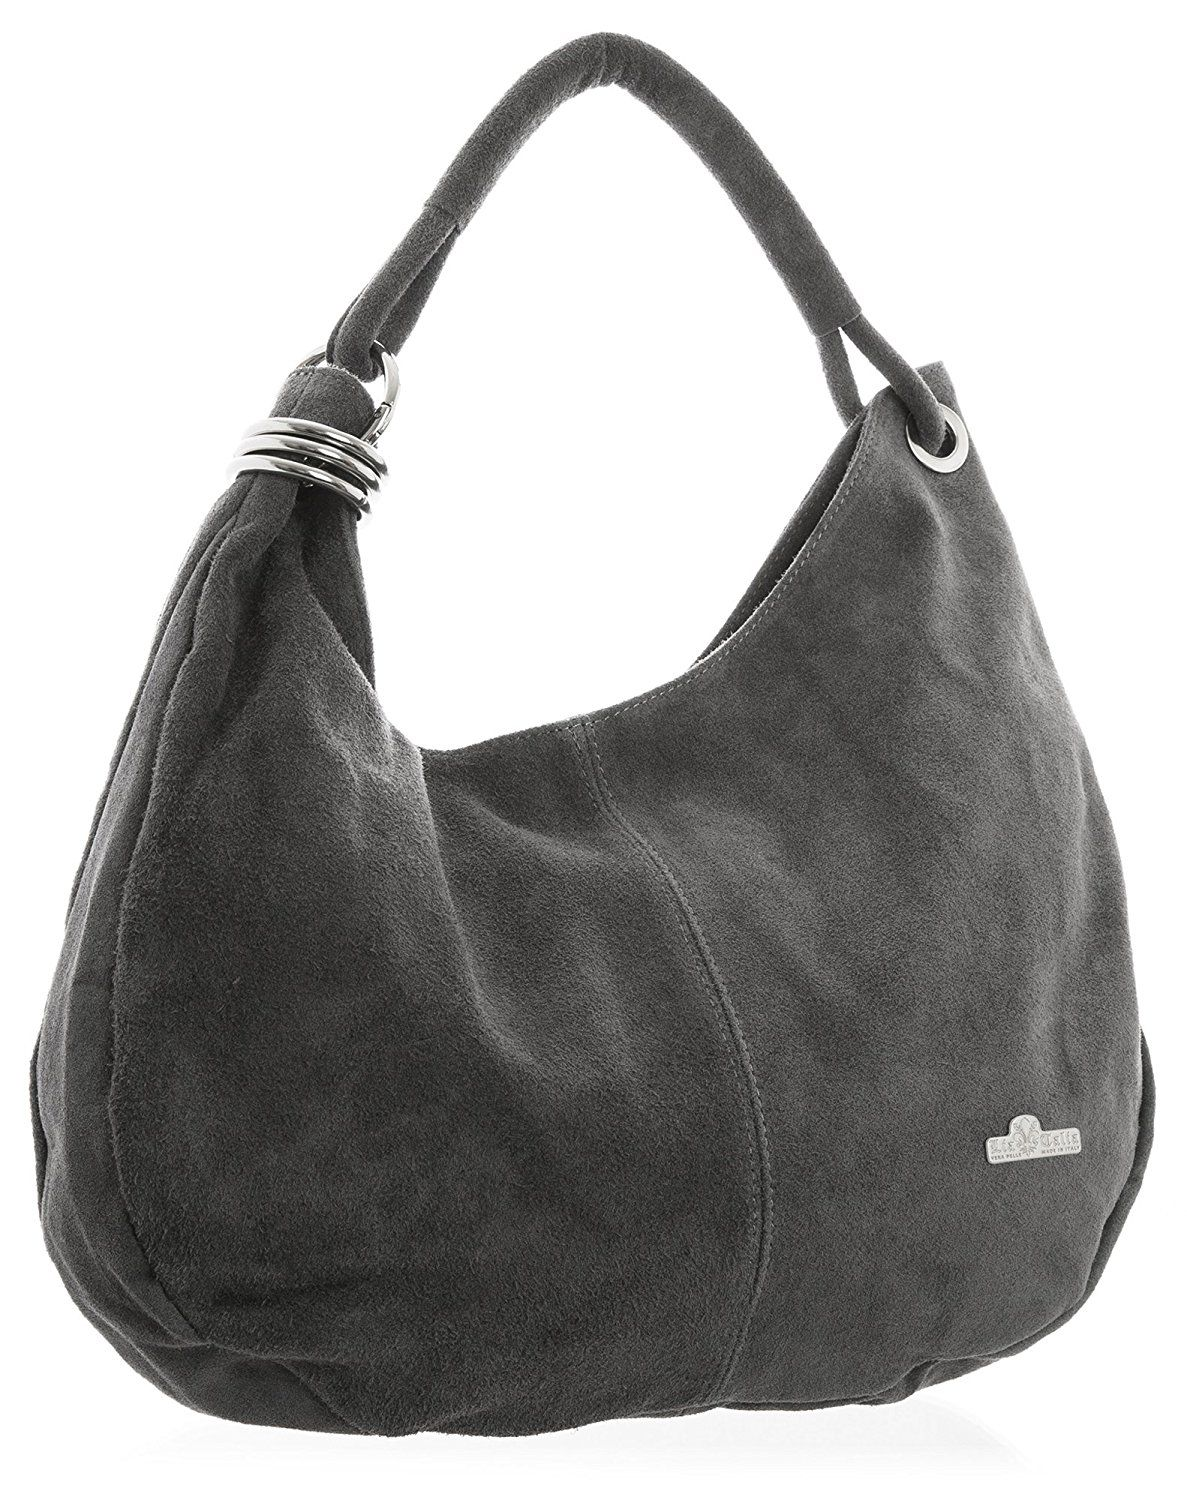 37fcc3ba7146 LiaTalia Large Real Italian Suede Leather Single Strap Hobo Slouch Bag with  Protective Storage Bag – Fiona